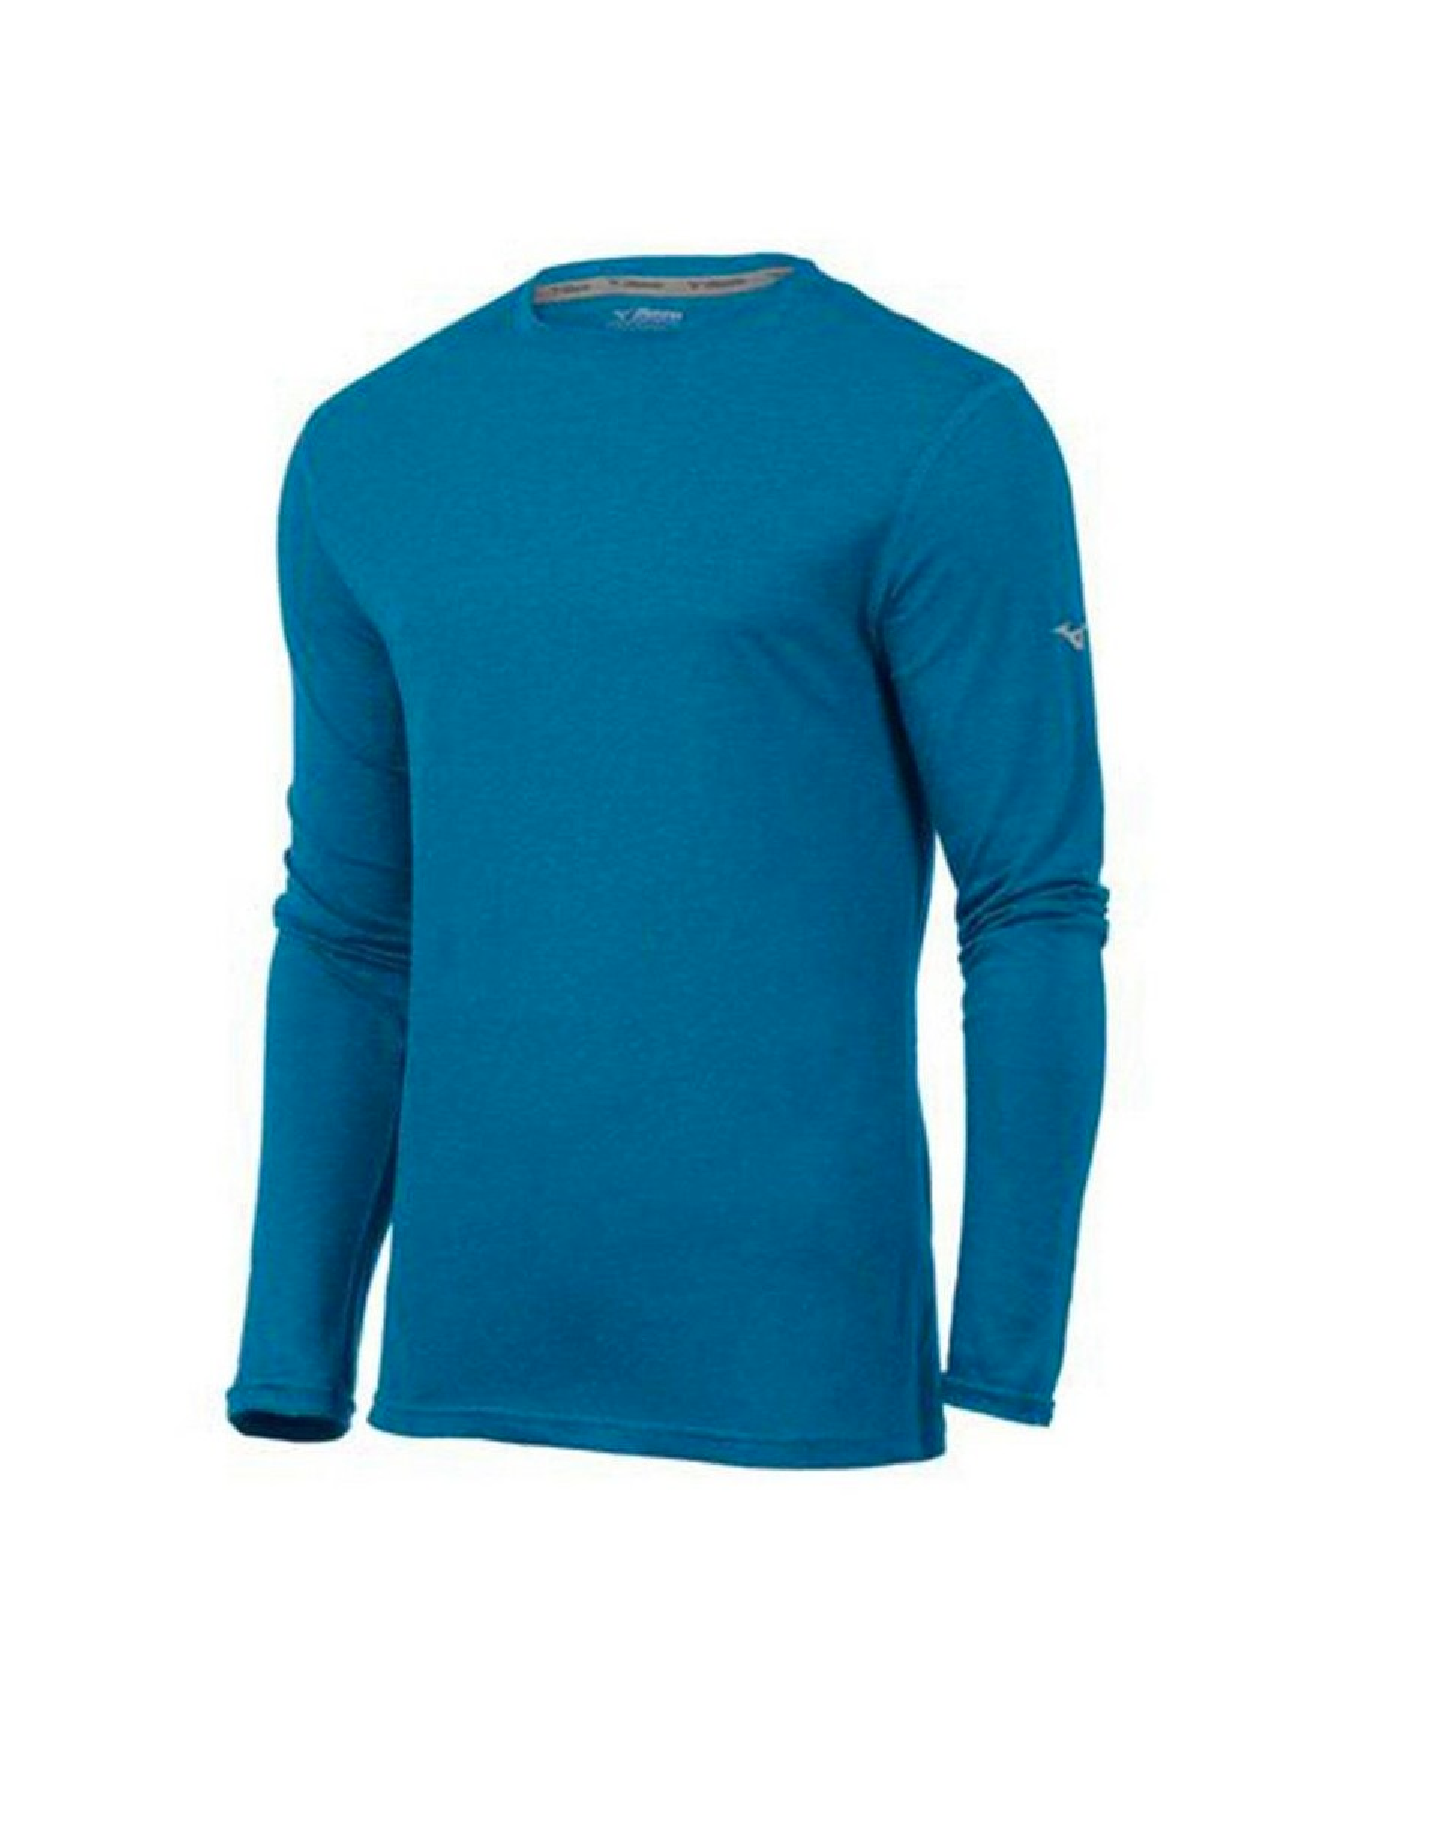 Mizuno Mizuno Inspire Long Sleeve Tee 3.0 - Men